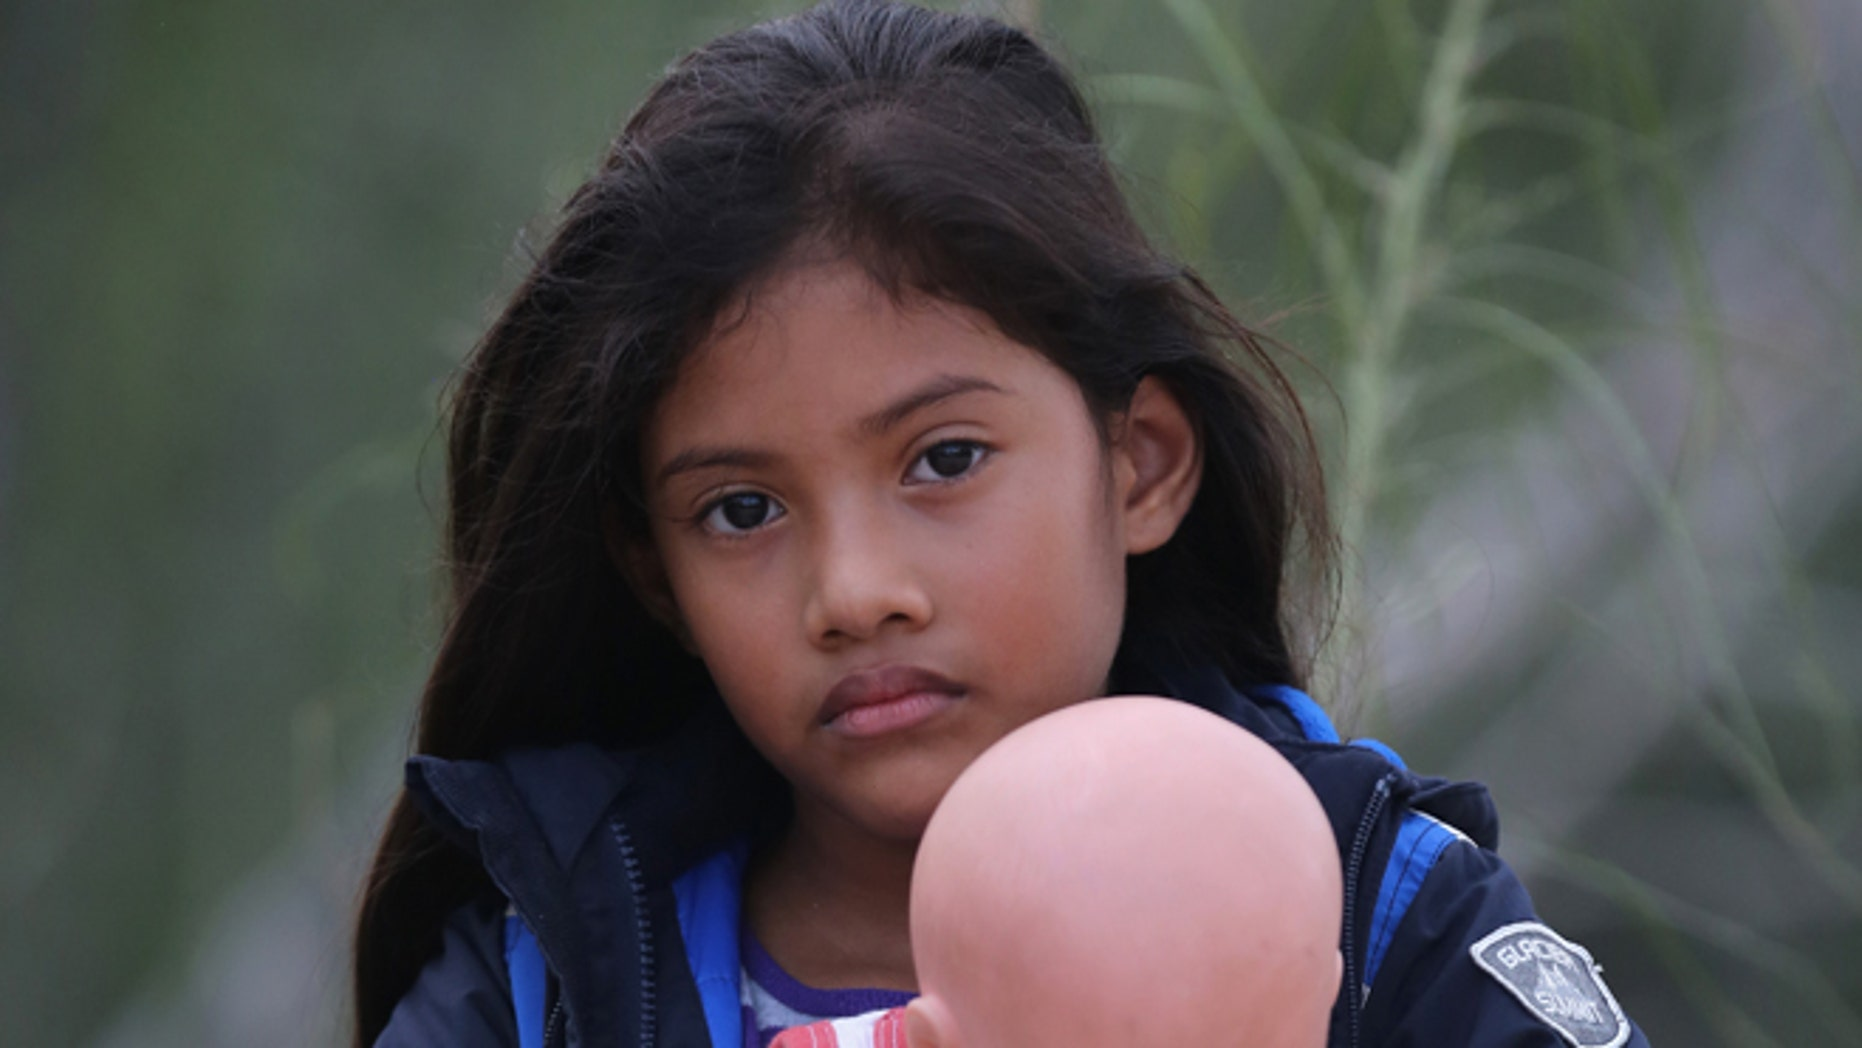 Salvadorian Stefany Marjorie, 8, after crossing the Rio Grande from Mexico on July 24, 2014 near Mission, Texas.